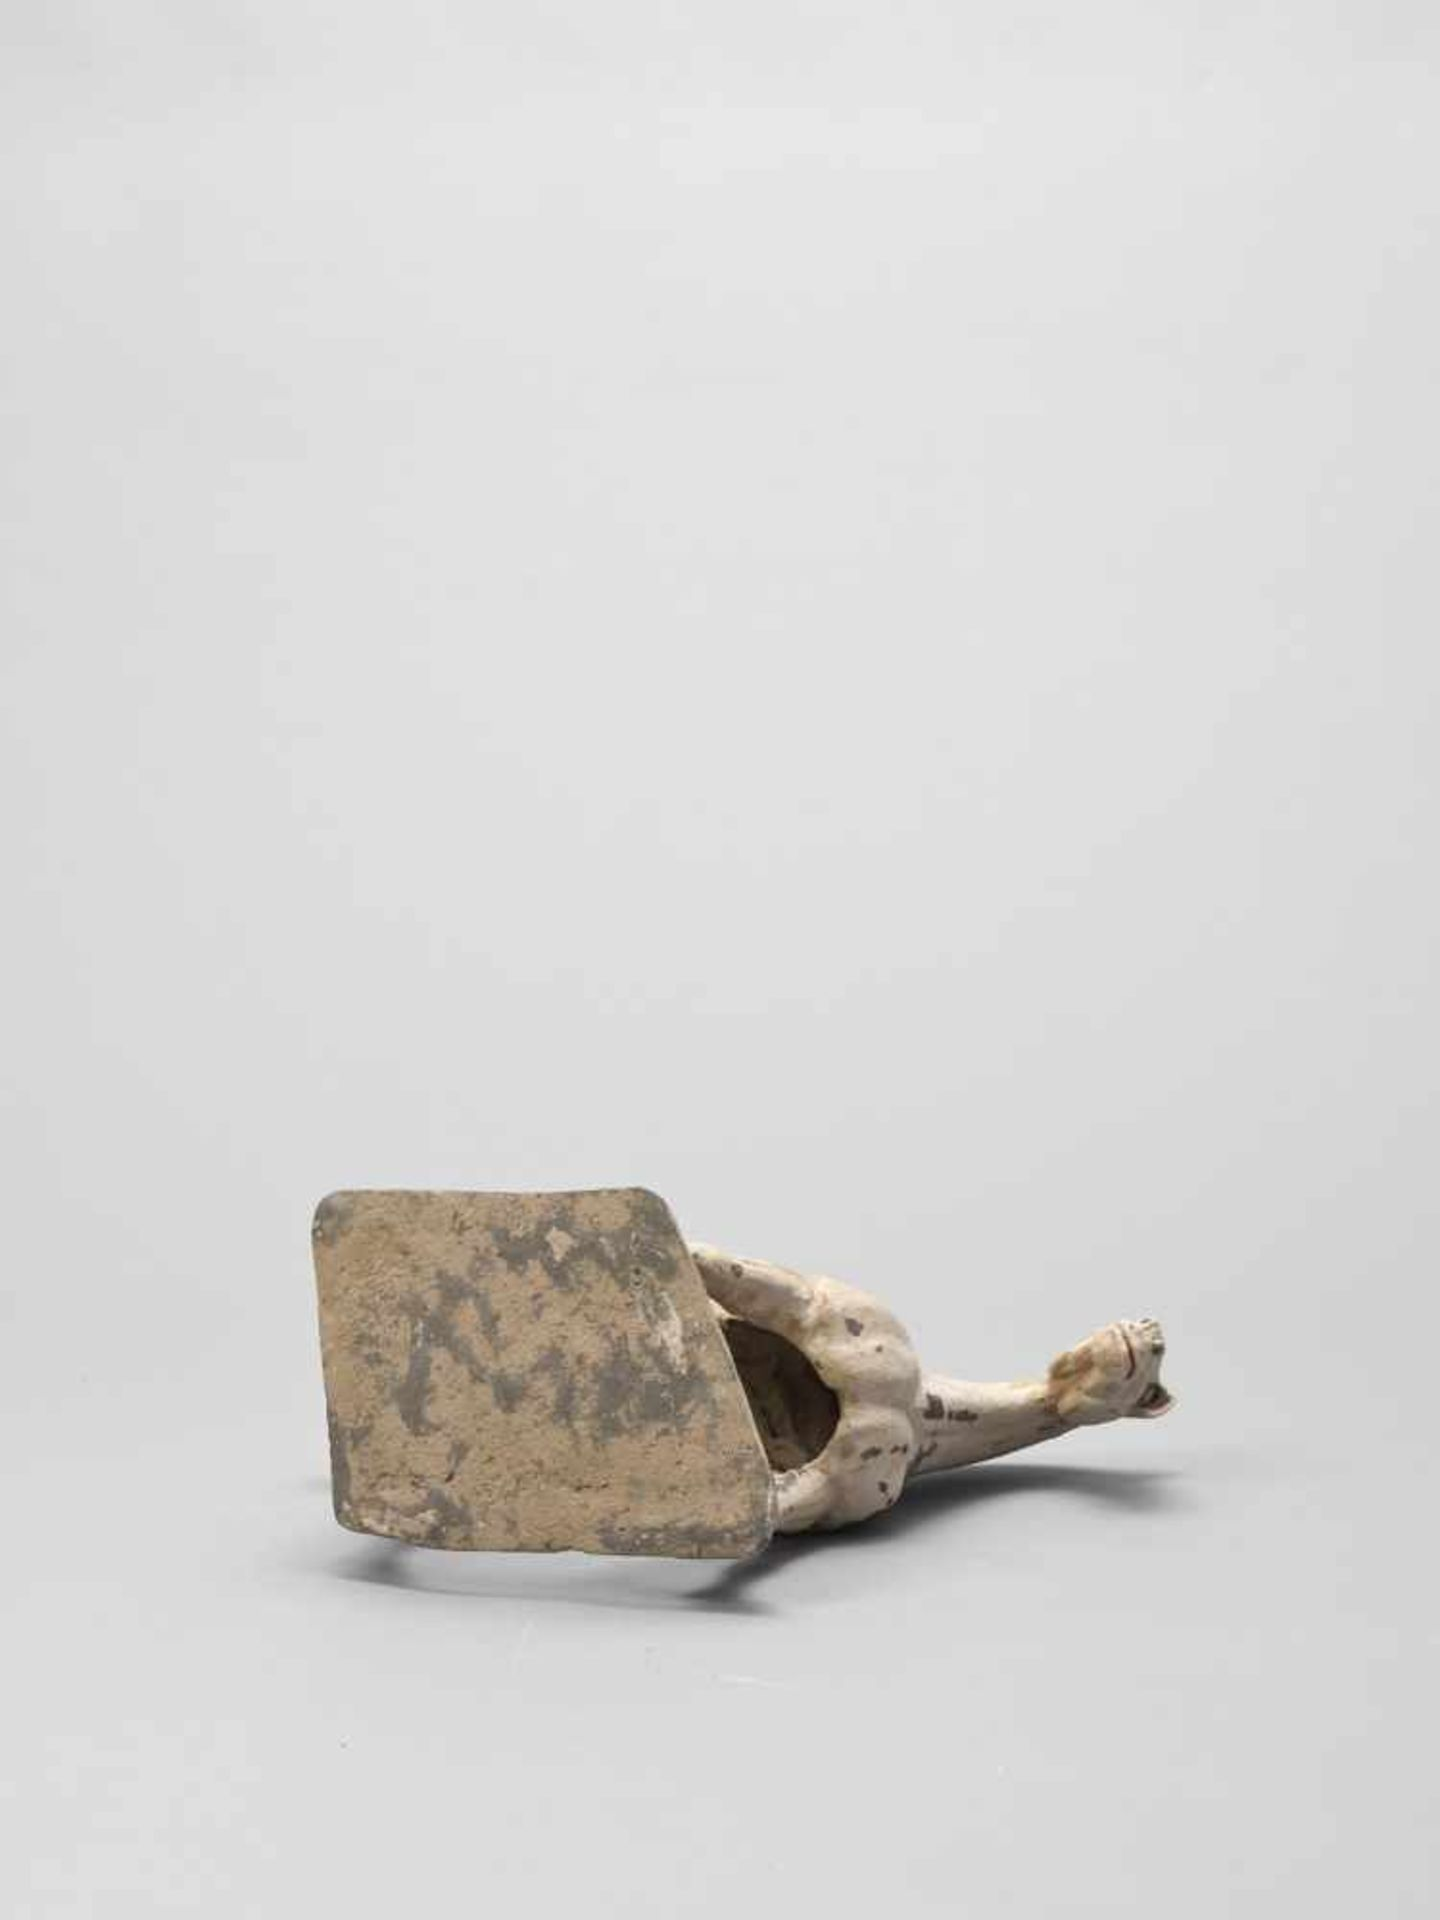 Los 388 - A TL-TESTED TERRACOTTA MODEL OF A HORSE, EARLY TANG